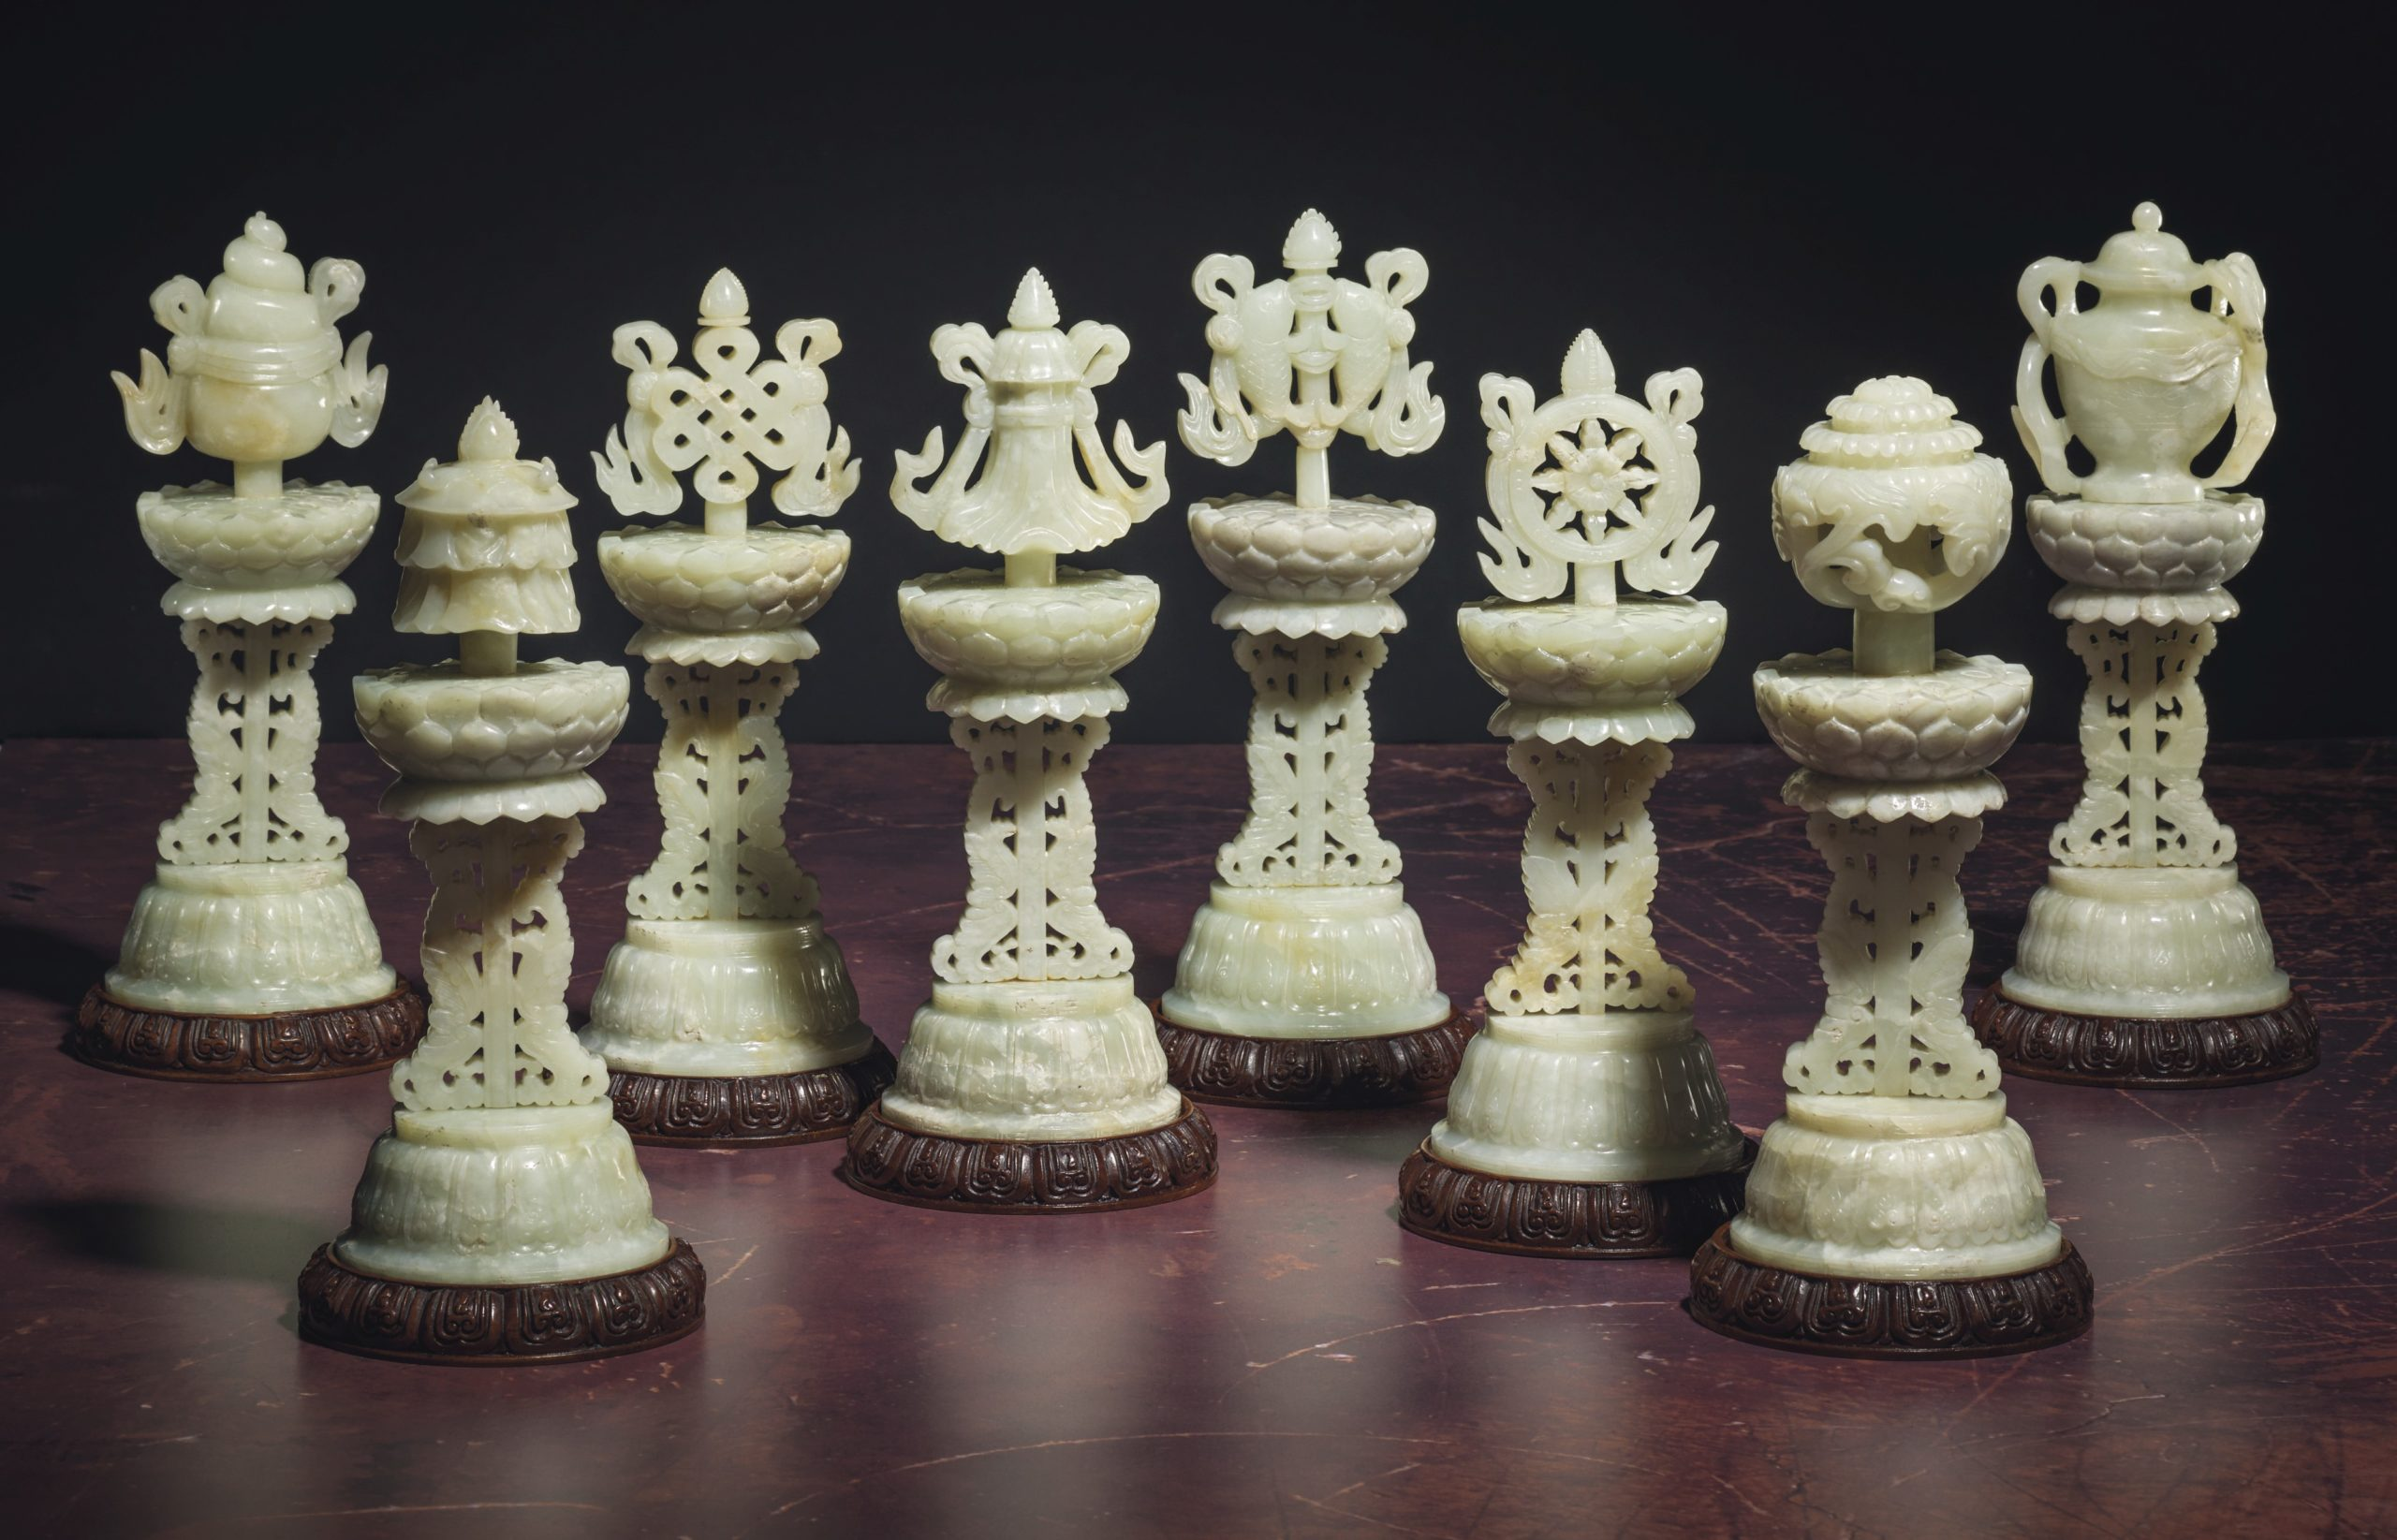 An Exceptionally Rare Complete Set of Pale Greenish-White Eight Buddhist Emblems, Bajixiang, 18th century, 9 7/8 in (25.1 cm.) high, £200,000-400,000